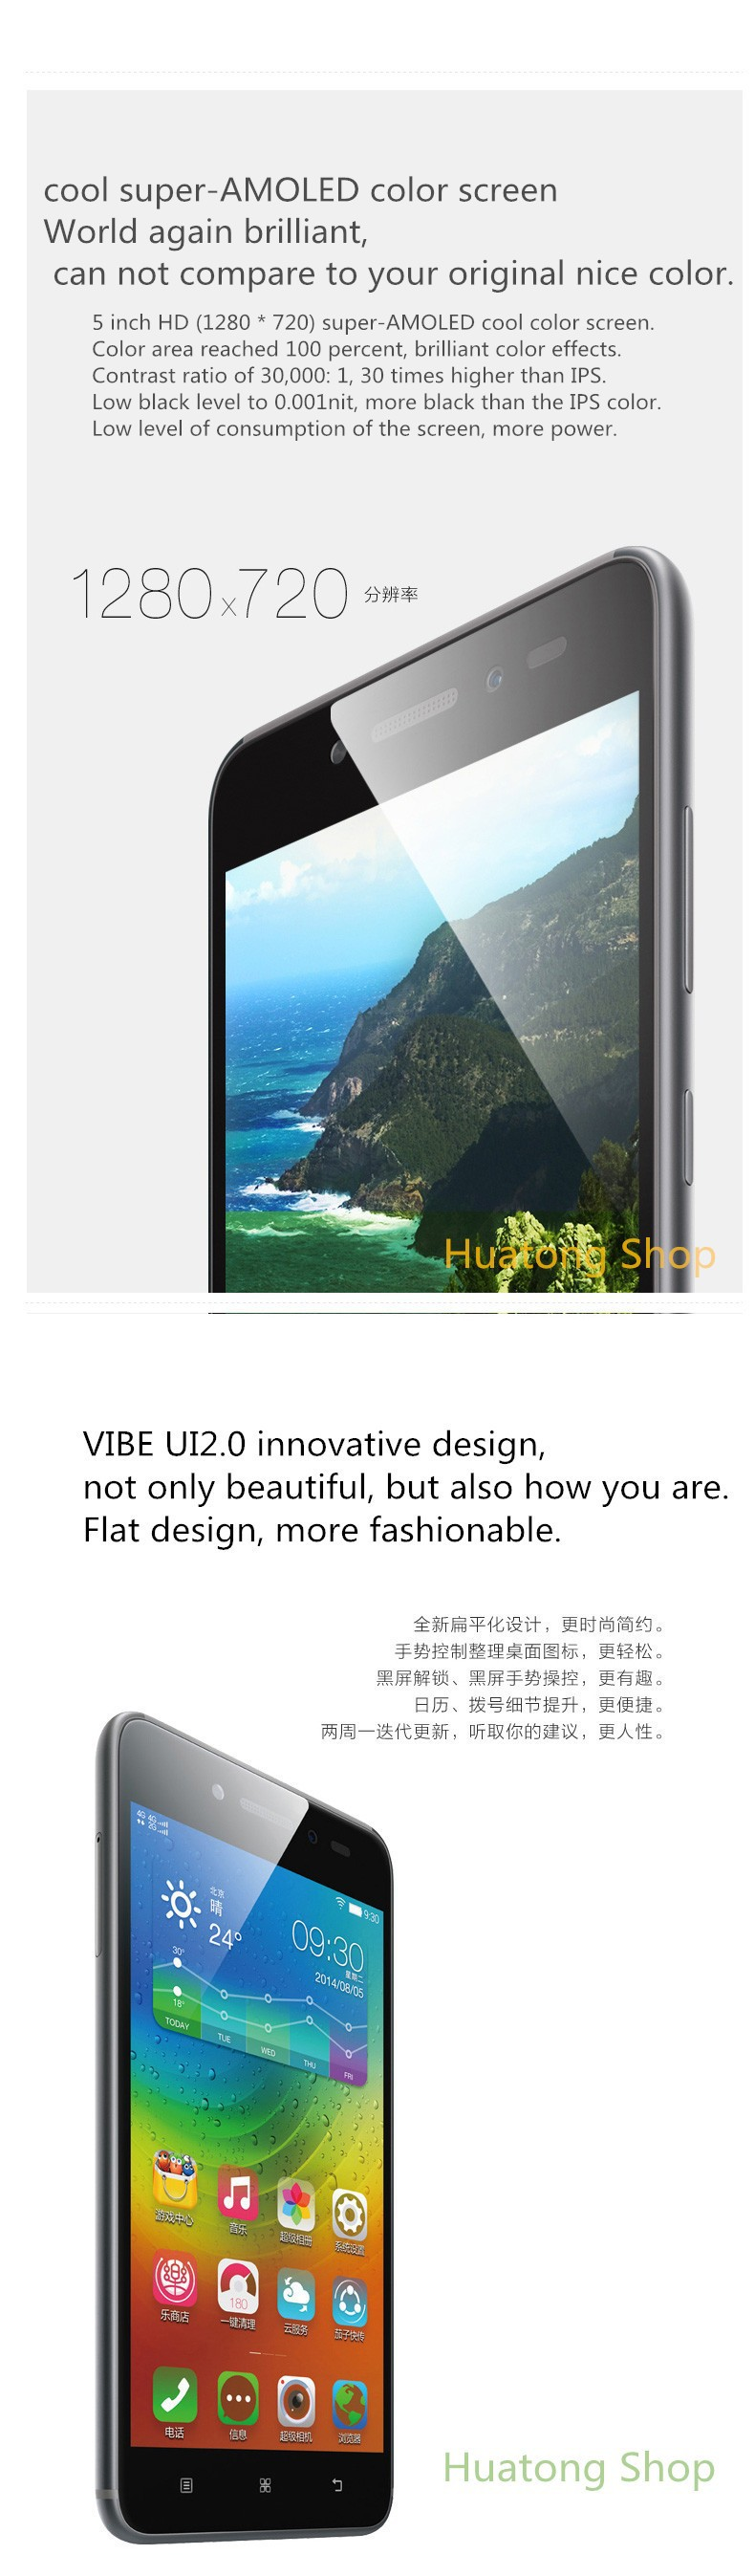 Original Lenovo S90 Wcdma Fdd 4g Lte Msm8916 Quad Core 16gb 1280720 Smartphone 5 Inch Display Android Kitkat Hd 1280 720 Super Amoled Cool Color Screen Area Reached 100 Percent